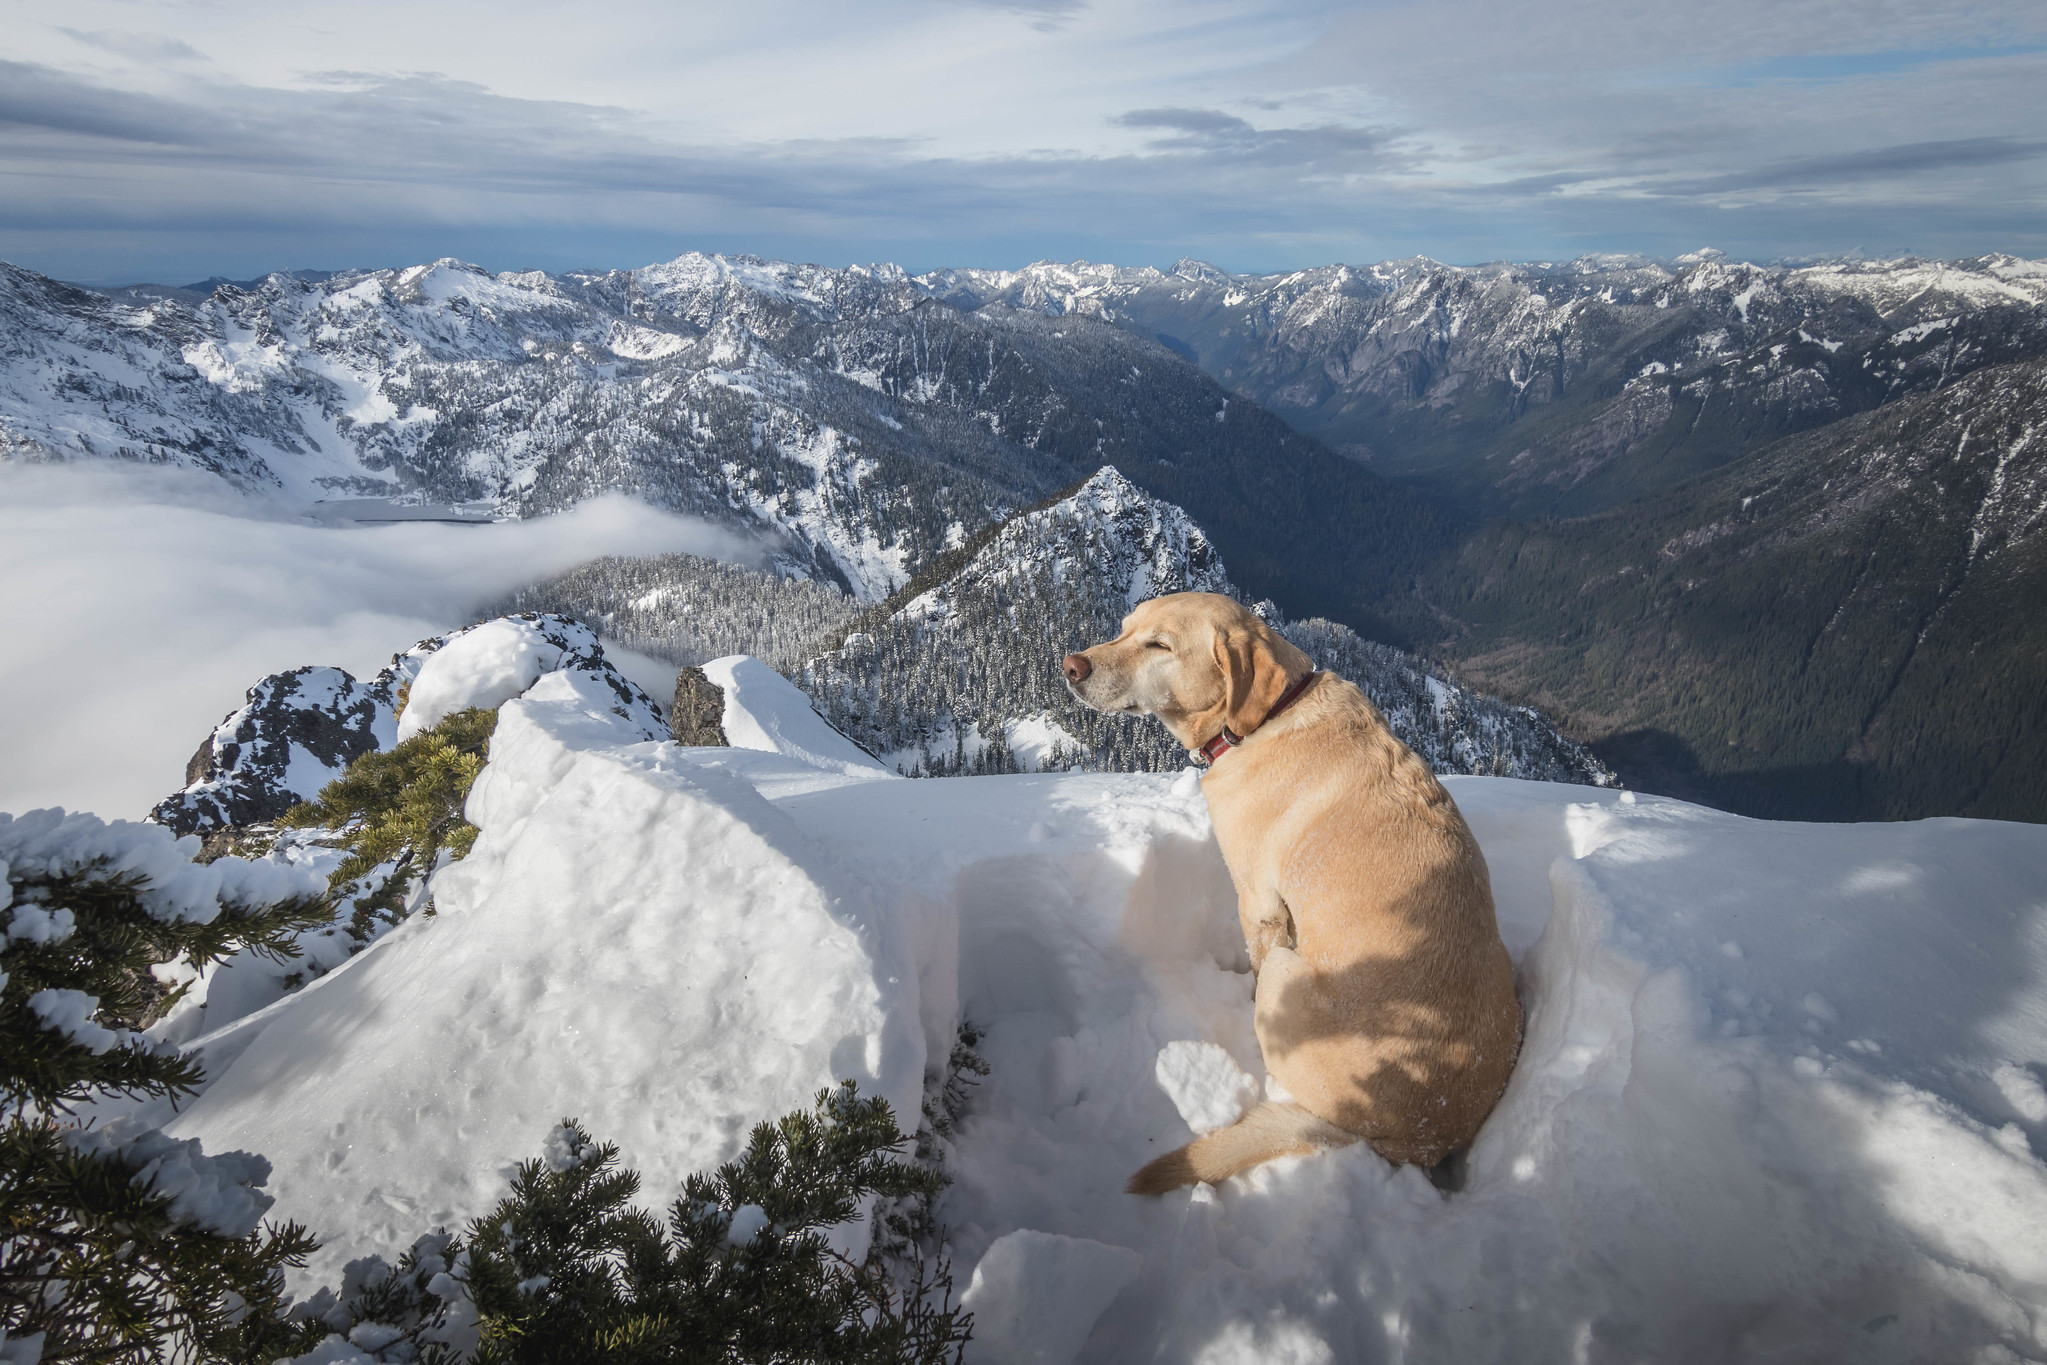 Summit dogs on Snoqualmie Mountain